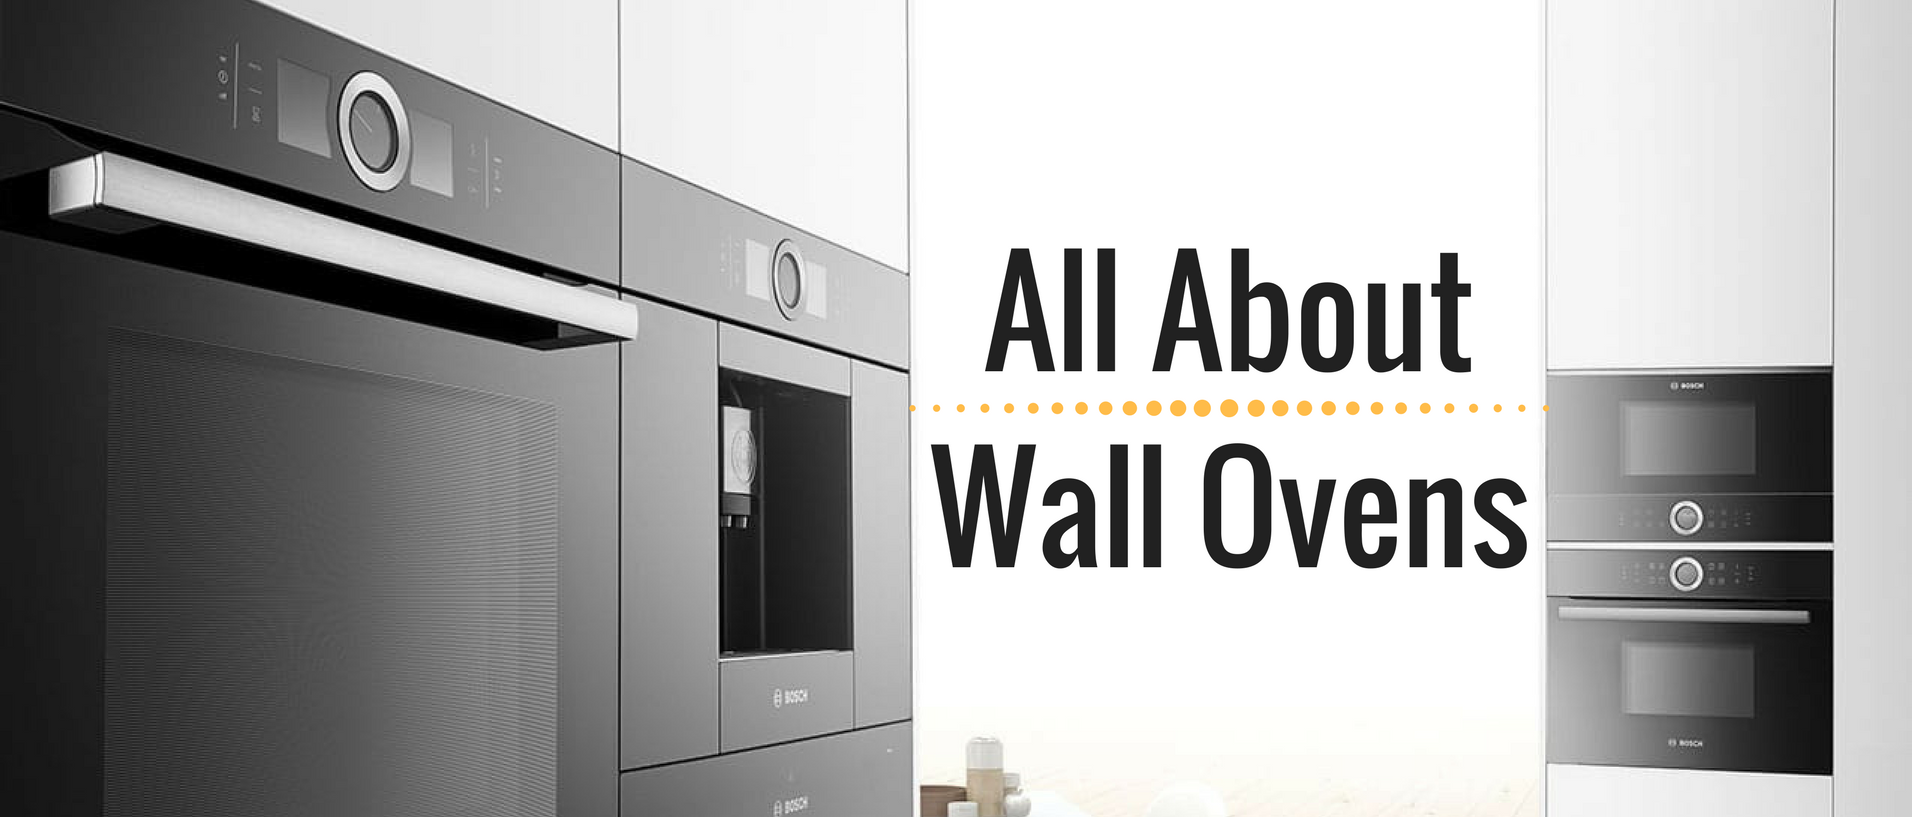 All About The Wall Oven